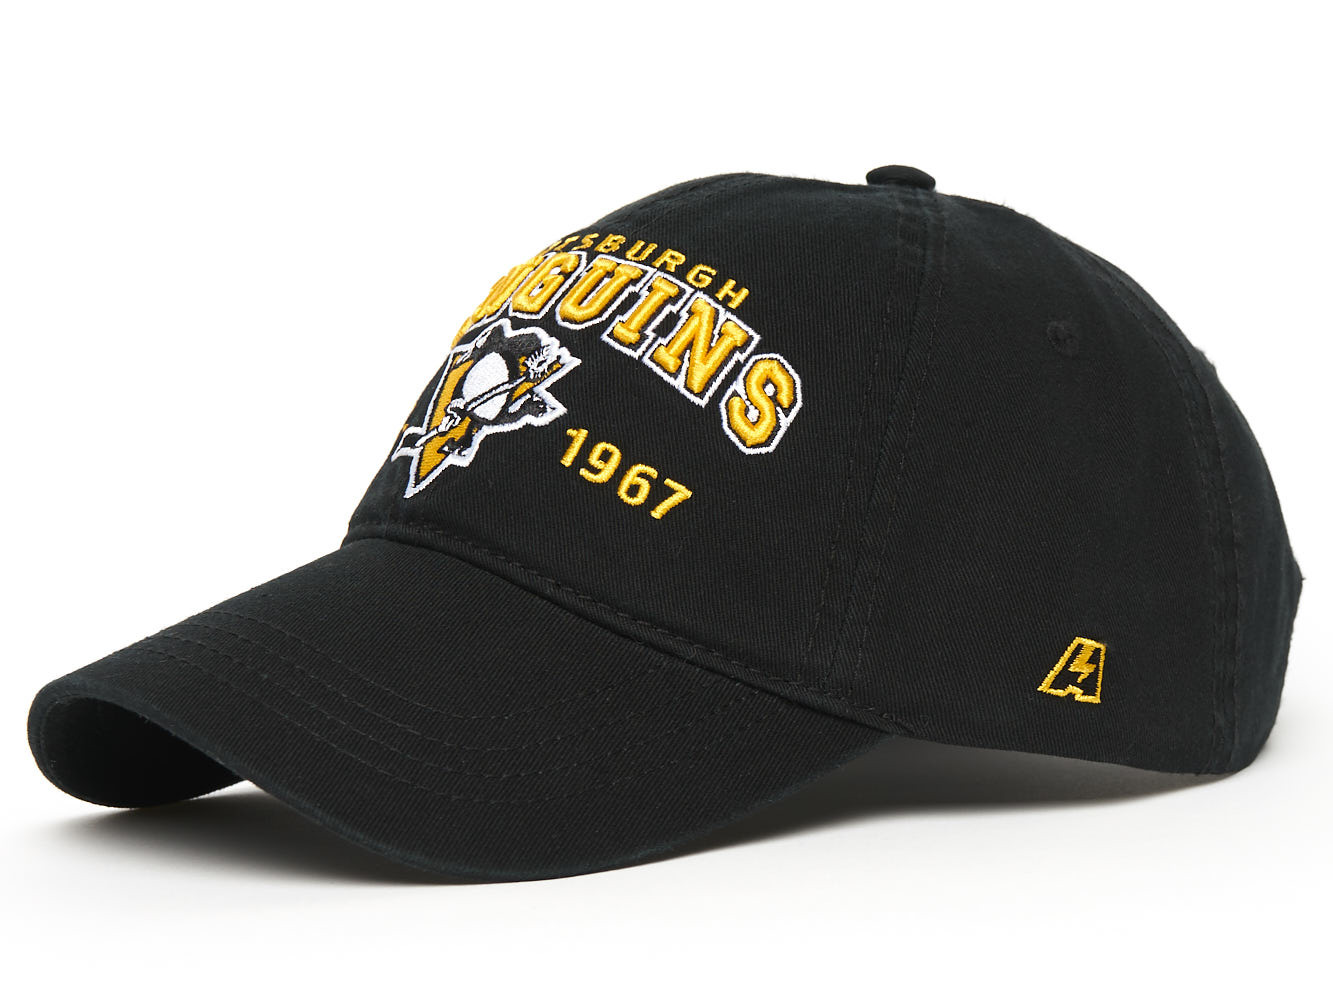 Бейсболка NHL Pittsburgh Penguins est. 1967